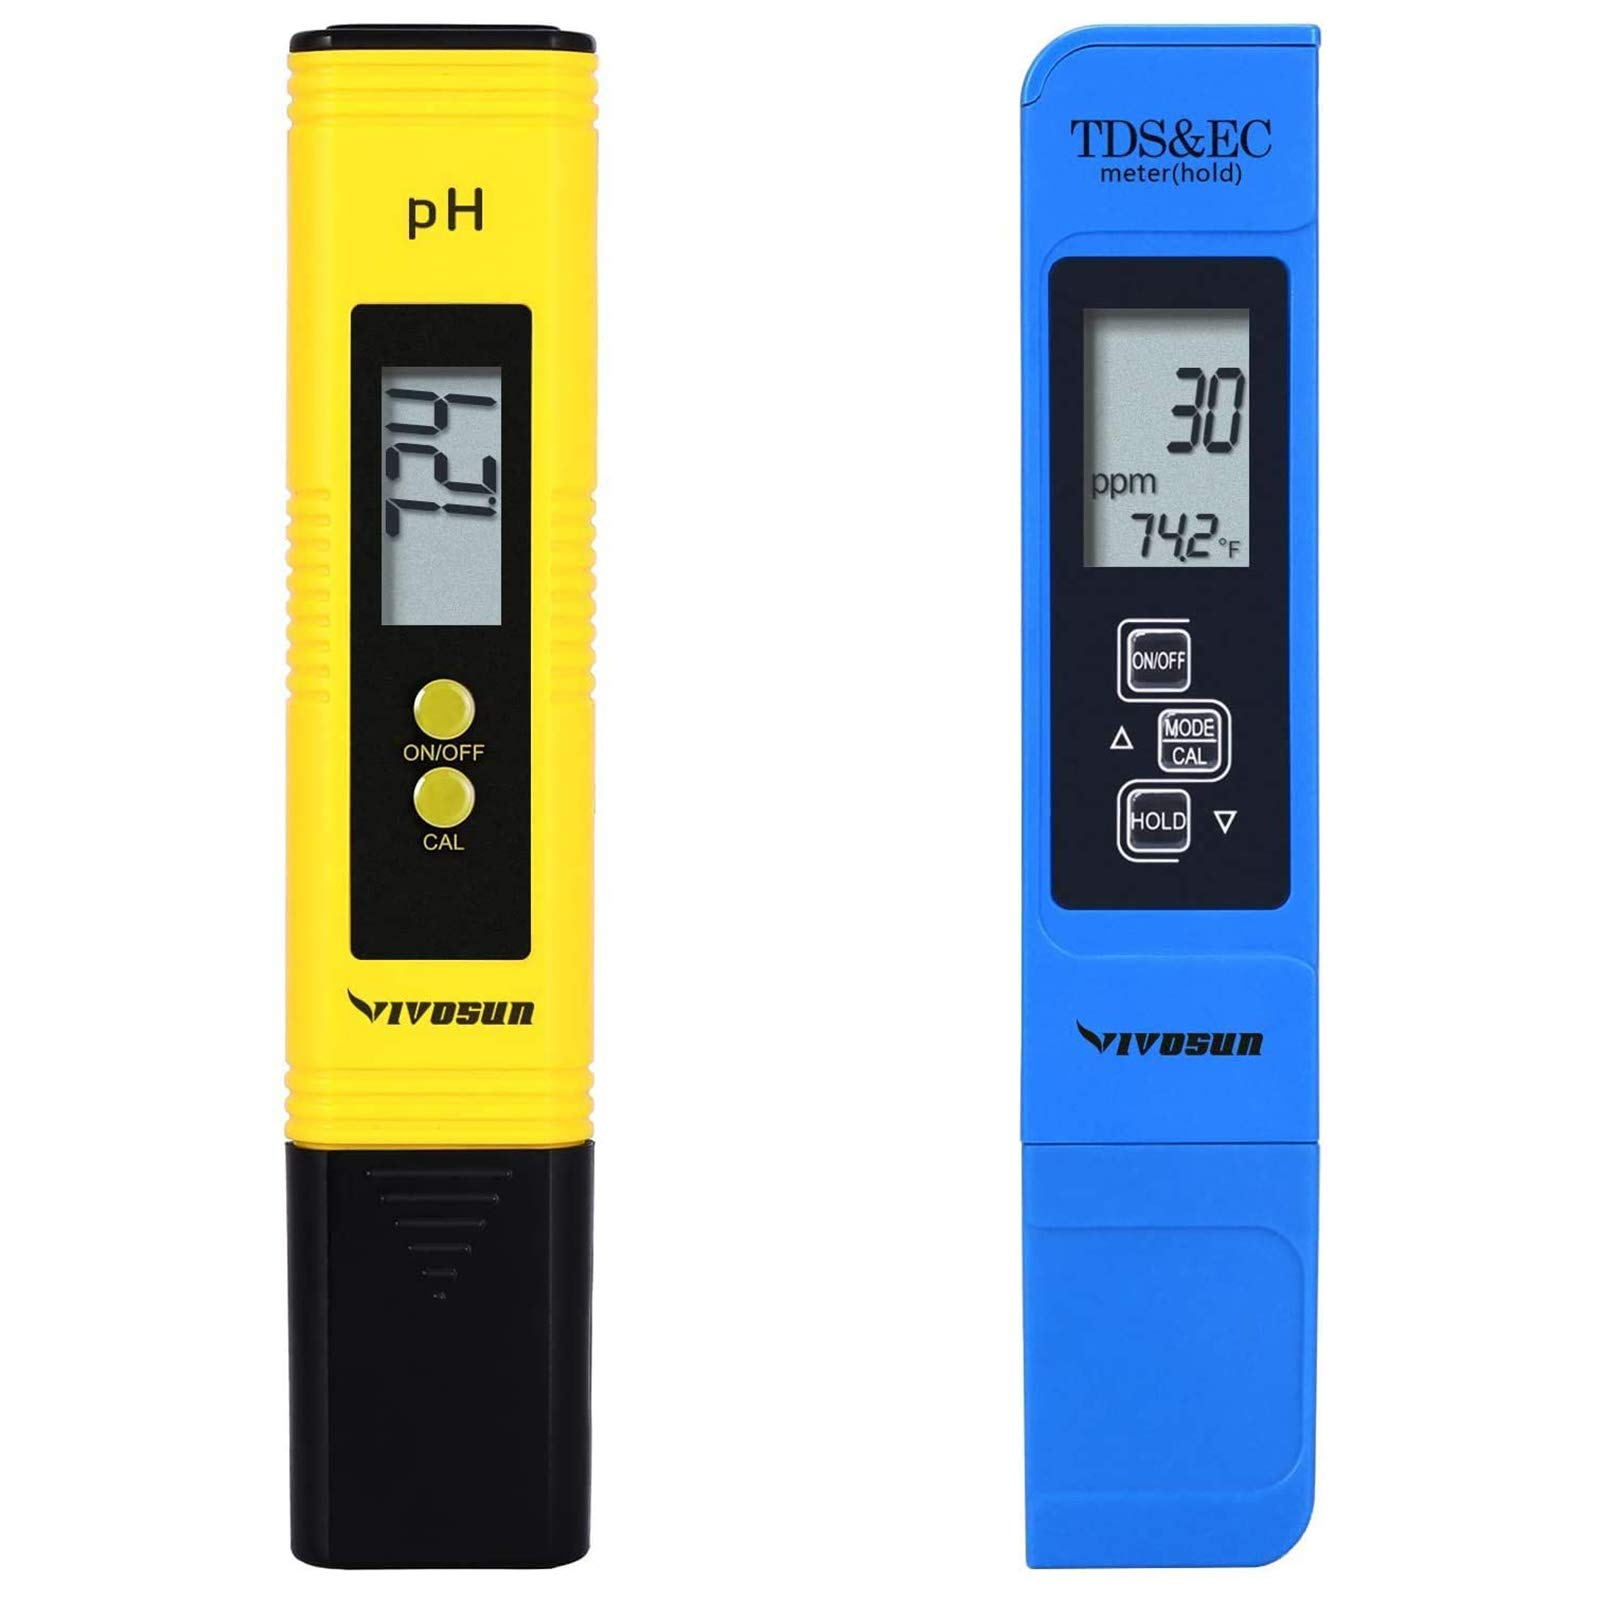 VIVOSUN pH and TDS Meter Combo, 0.05ph High Accuracy Pen Type pH Meter ± 2% Readout Accuracy 3-in-1 TDS EC Temperature Meter